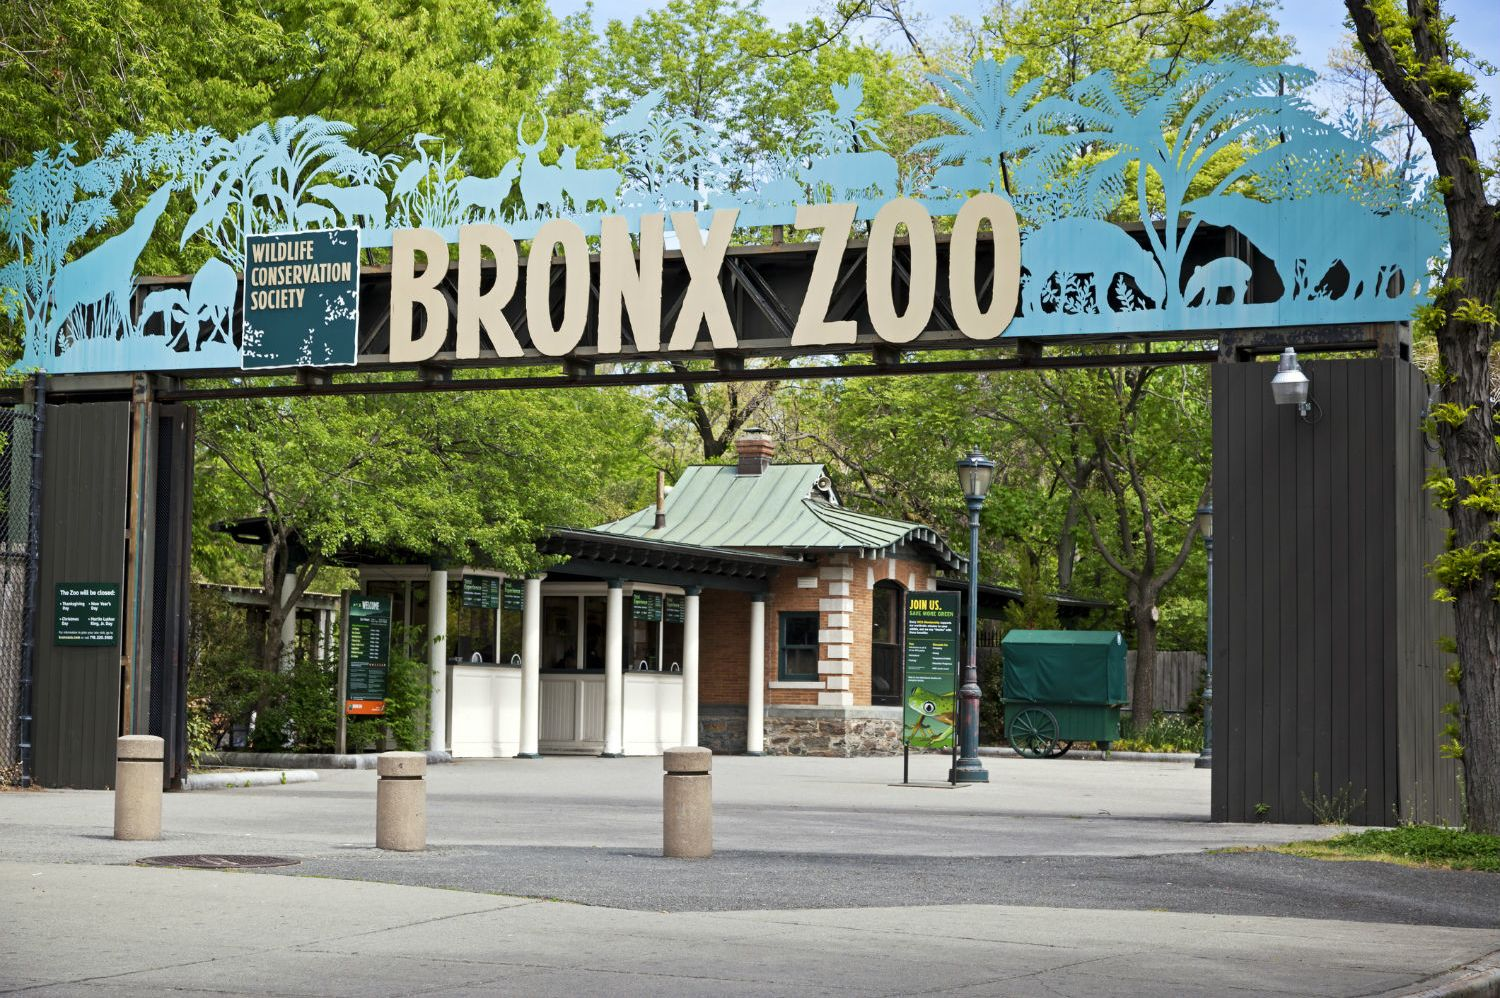 9 Wild Facts About the Bronx Zoo | Mental Floss